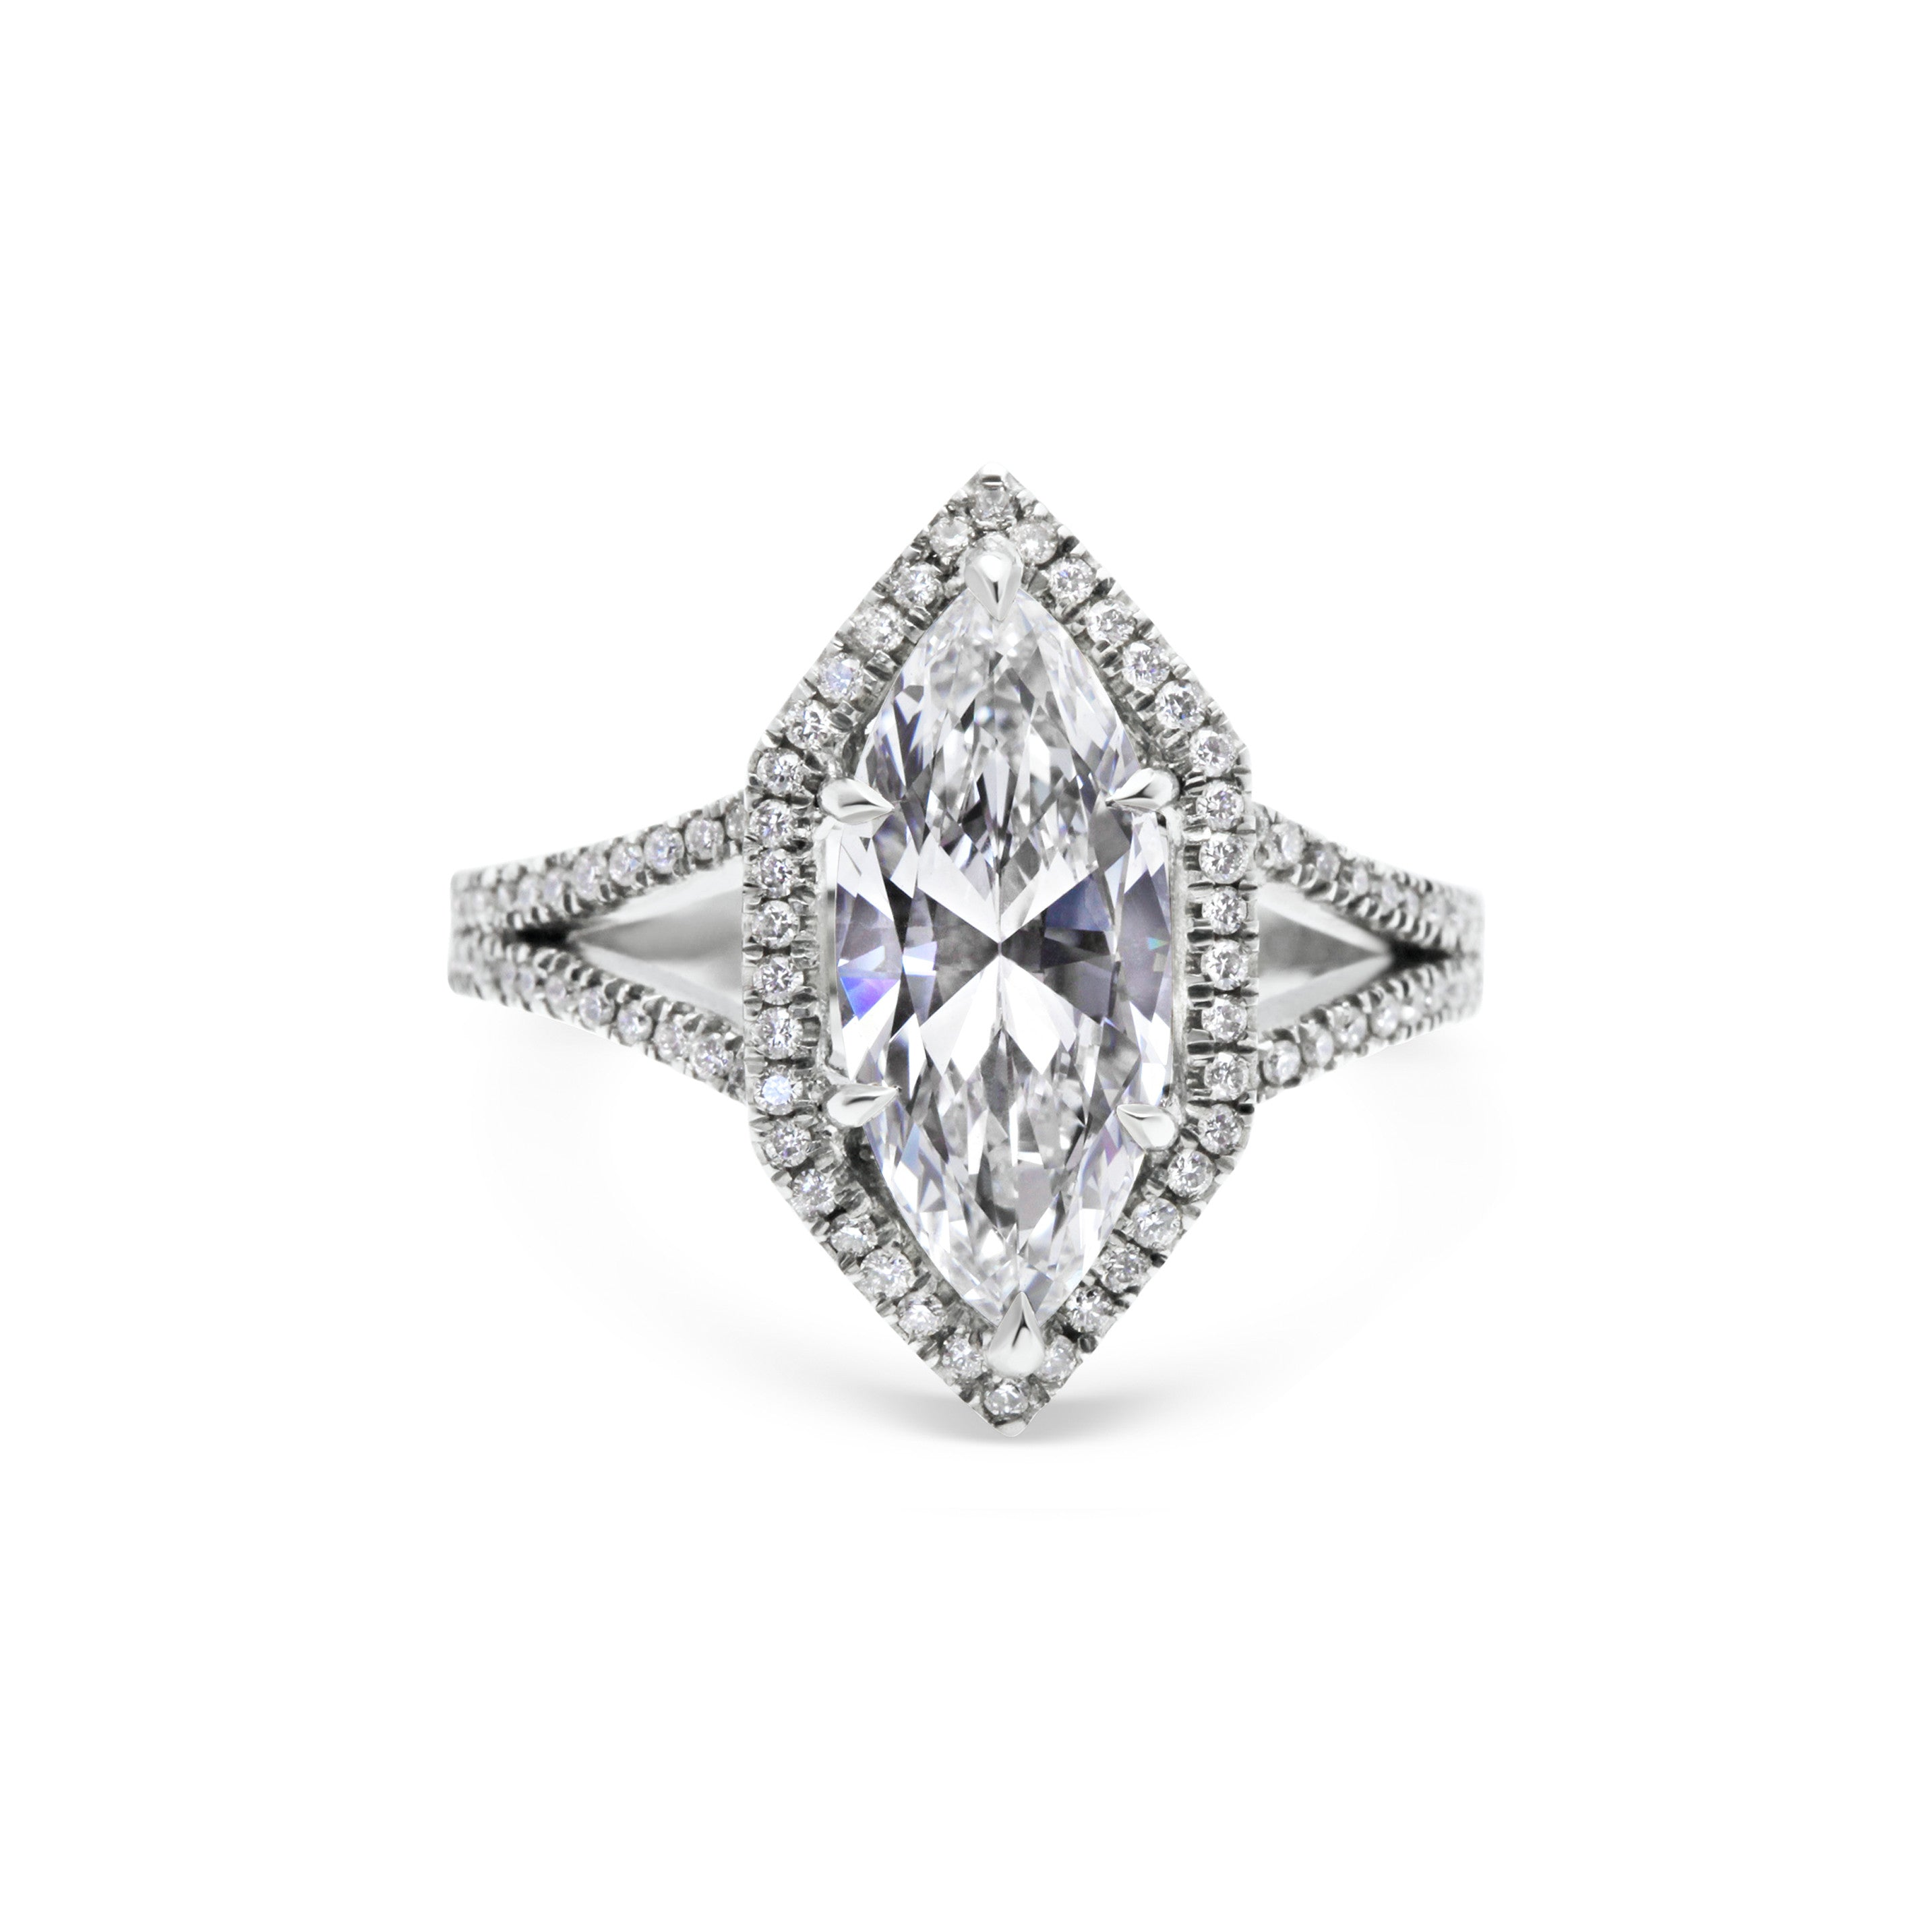 1.76ct Marquise Diamond Ring with Hexagonal Diamond halo, Platinum